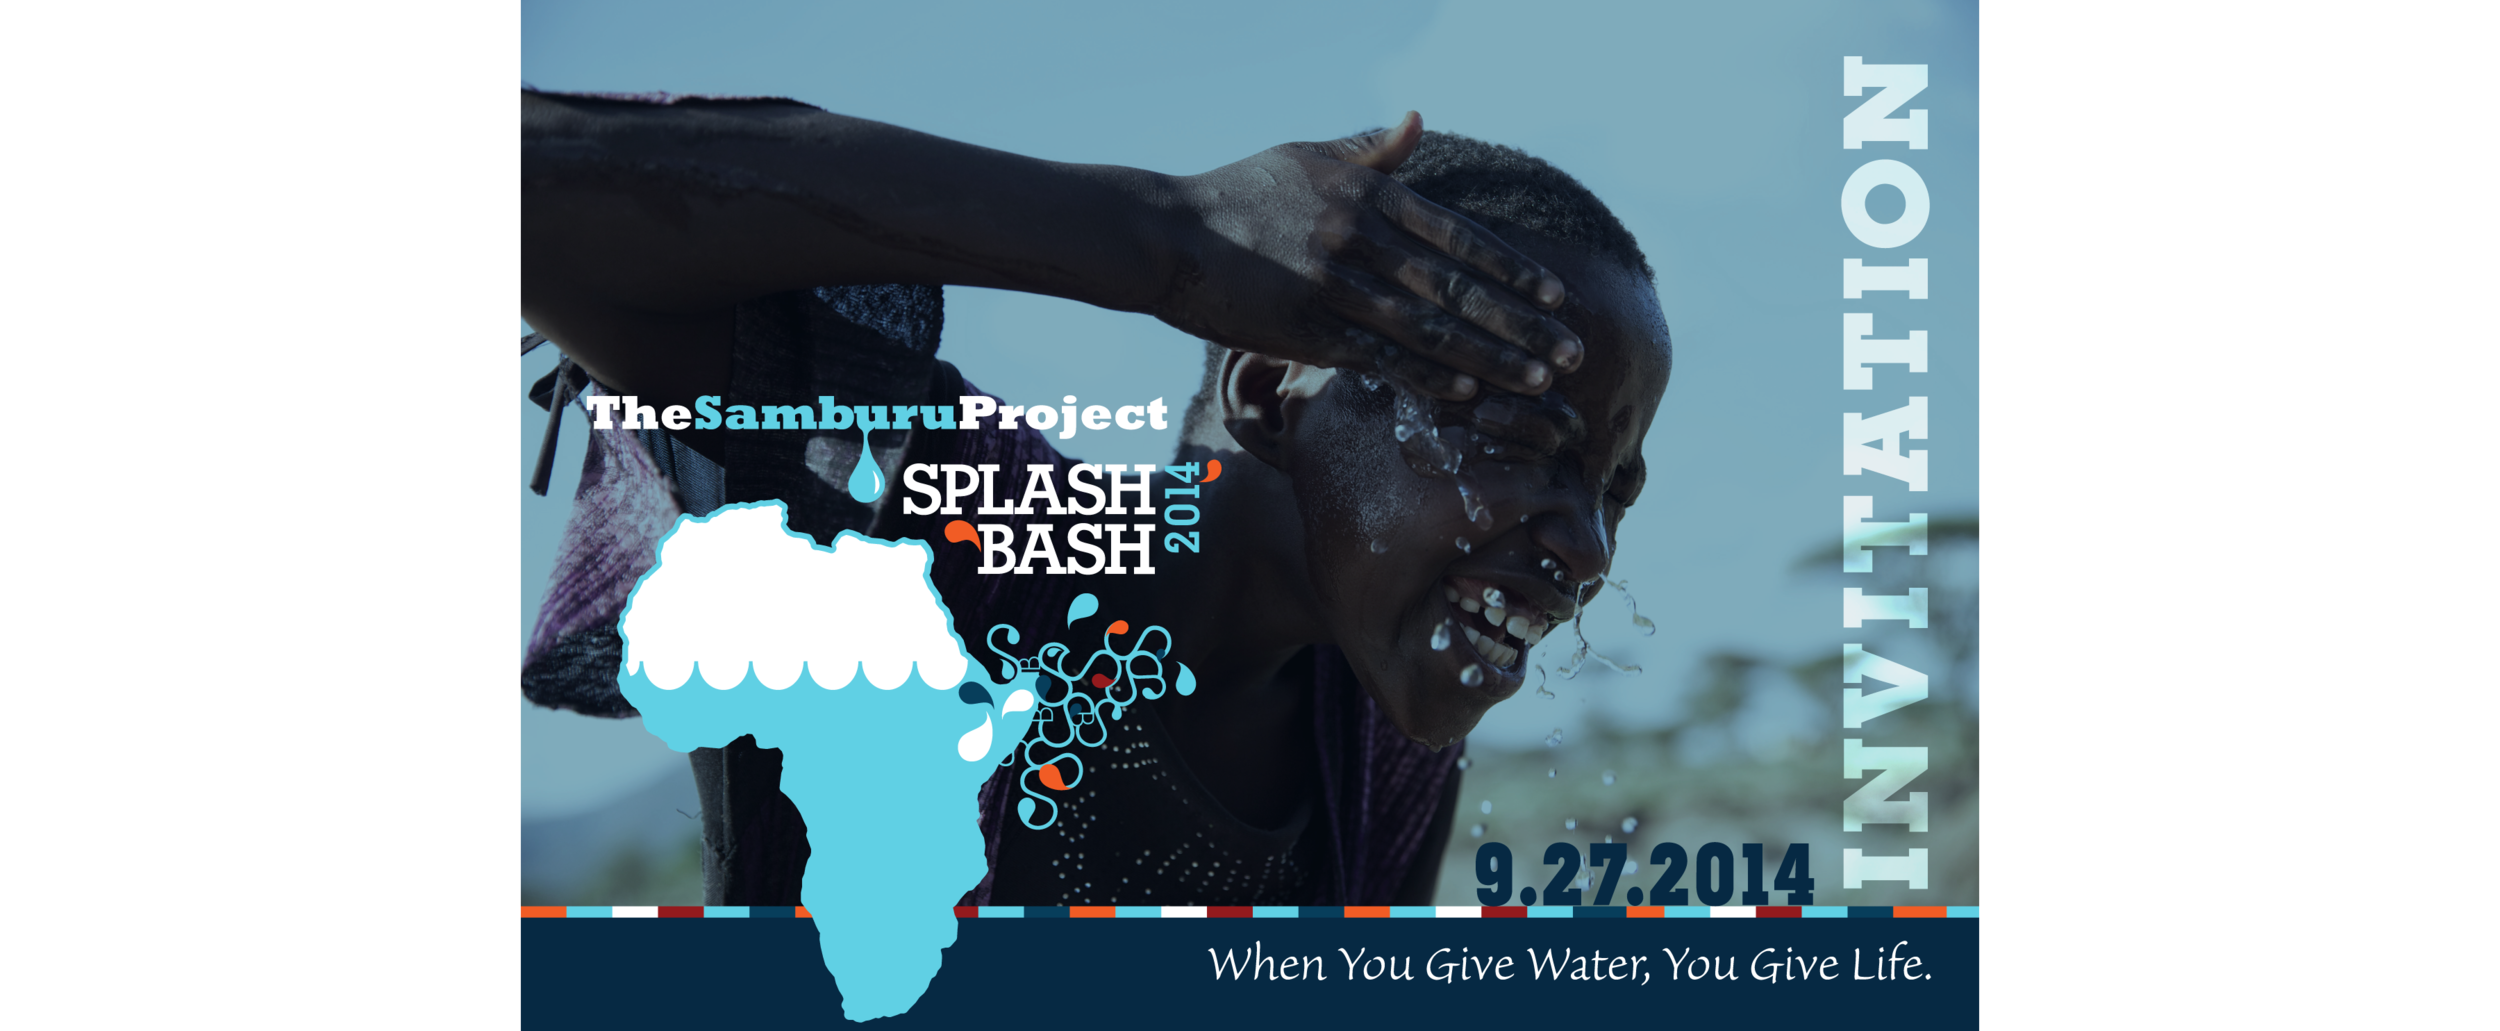 milk + brookies is honored to sponsor Splash Bash 2014,  The Samburu Project's  fundraising gala for clean water.  The Samburu Project  provides easy access to clean, safe drinking water to communities in northern Kenya.  Approximately 4,500 children die every day due to the lack of clean drinking water. YOU can change this by getting involved with  The Samburu Project.  Join milk + brookies in supporting this worthy cause by making a donation, volunteering your time or promoting their work.  - m+b